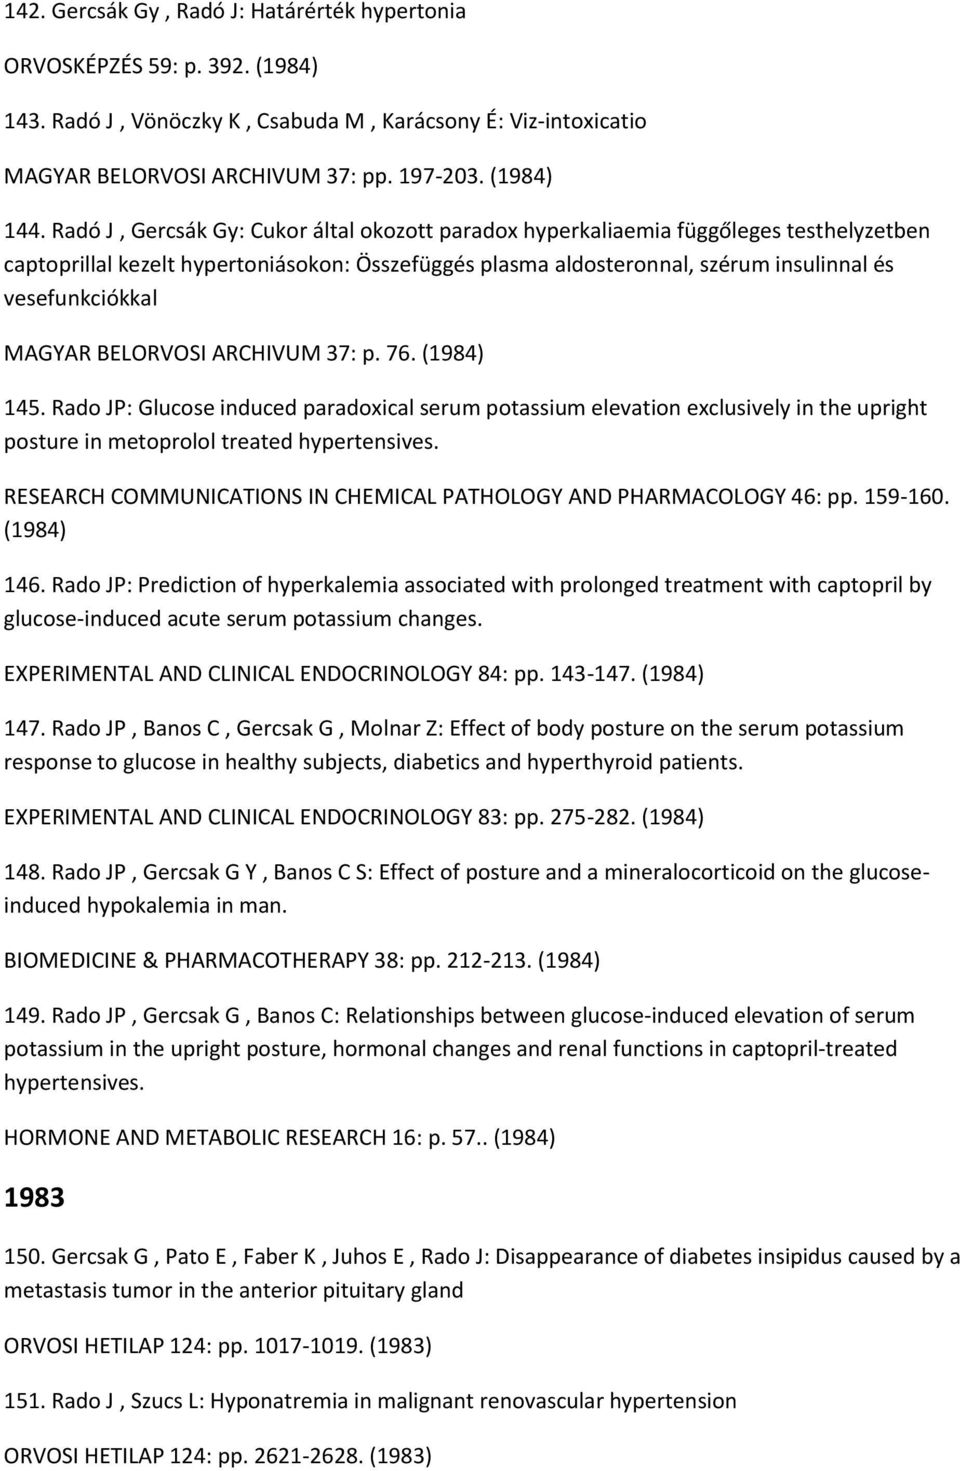 MAGYAR BELORVOSI ARCHIVUM 37: p. 76. (1984) 145. Rado JP: Glucose induced paradoxical serum potassium elevation exclusively in the upright posture in metoprolol treated hypertensives.